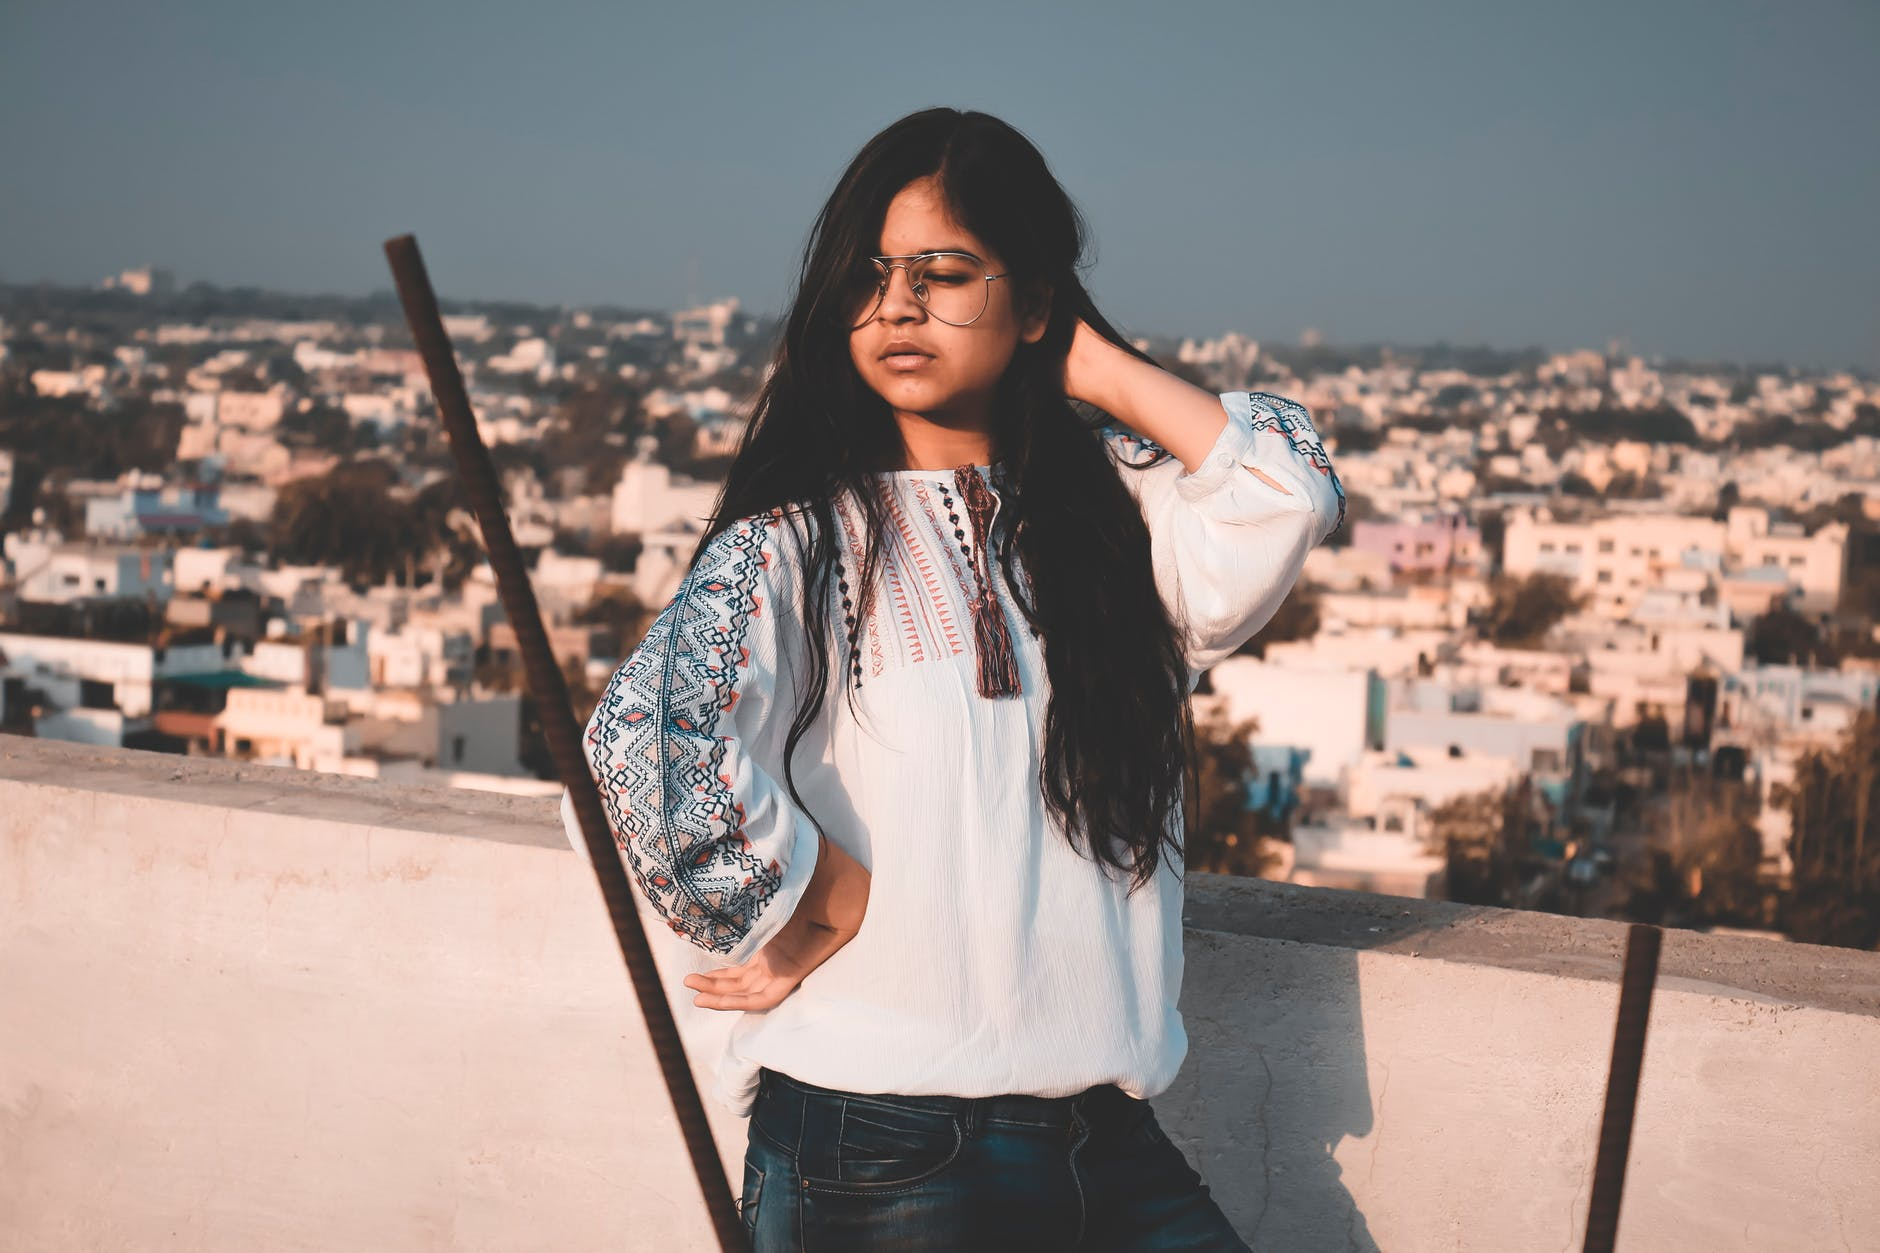 girl with long hair in white shirt standing on a balcony with view on city